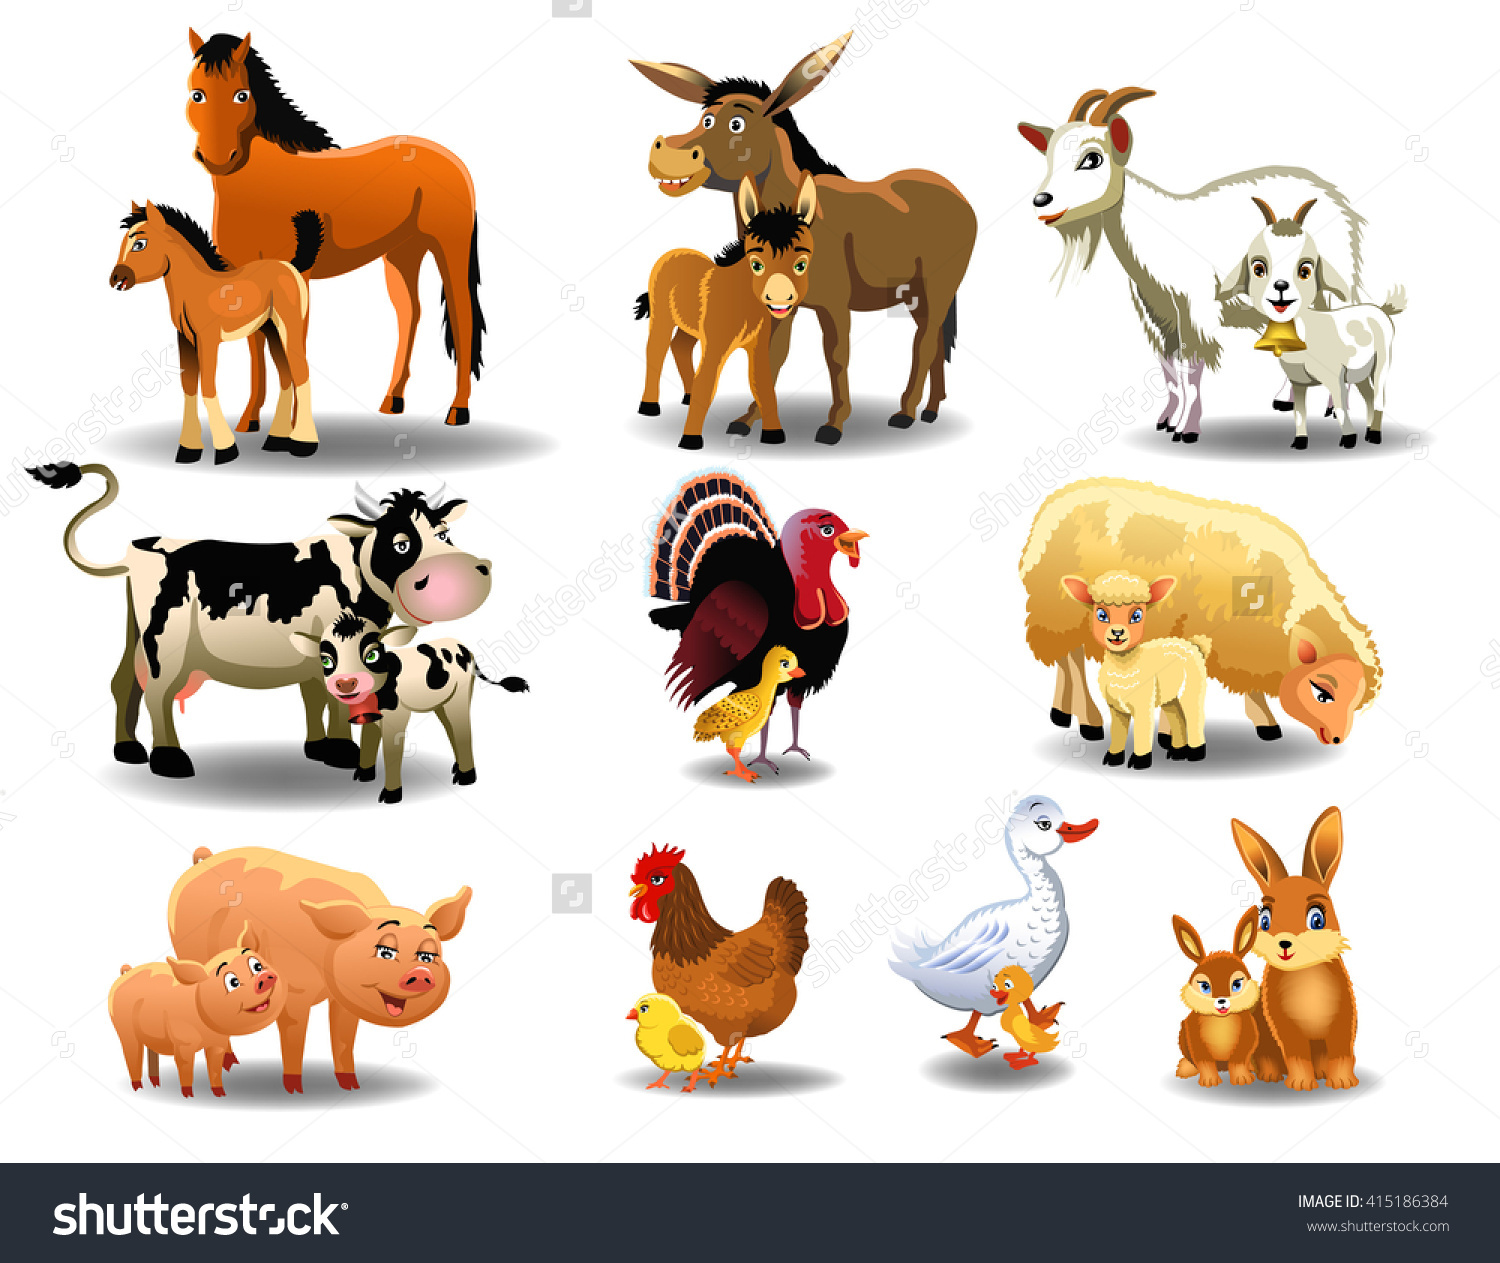 Animals And Their Young Ones Clip Art Christmas |  Dzfhtg.merry-christmas24.site